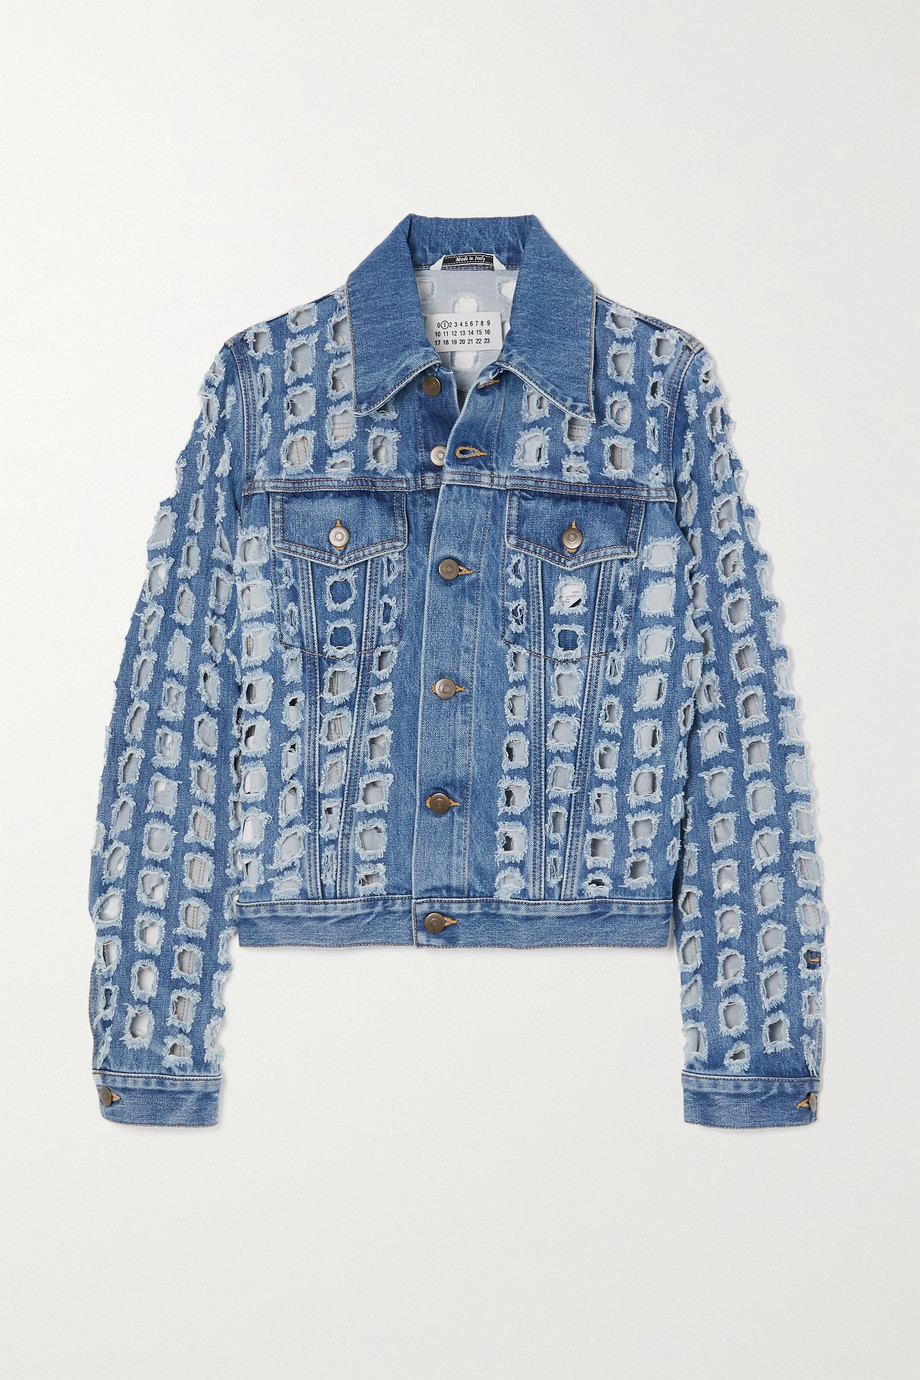 Maison Margiela Distressed cutout denim jacket